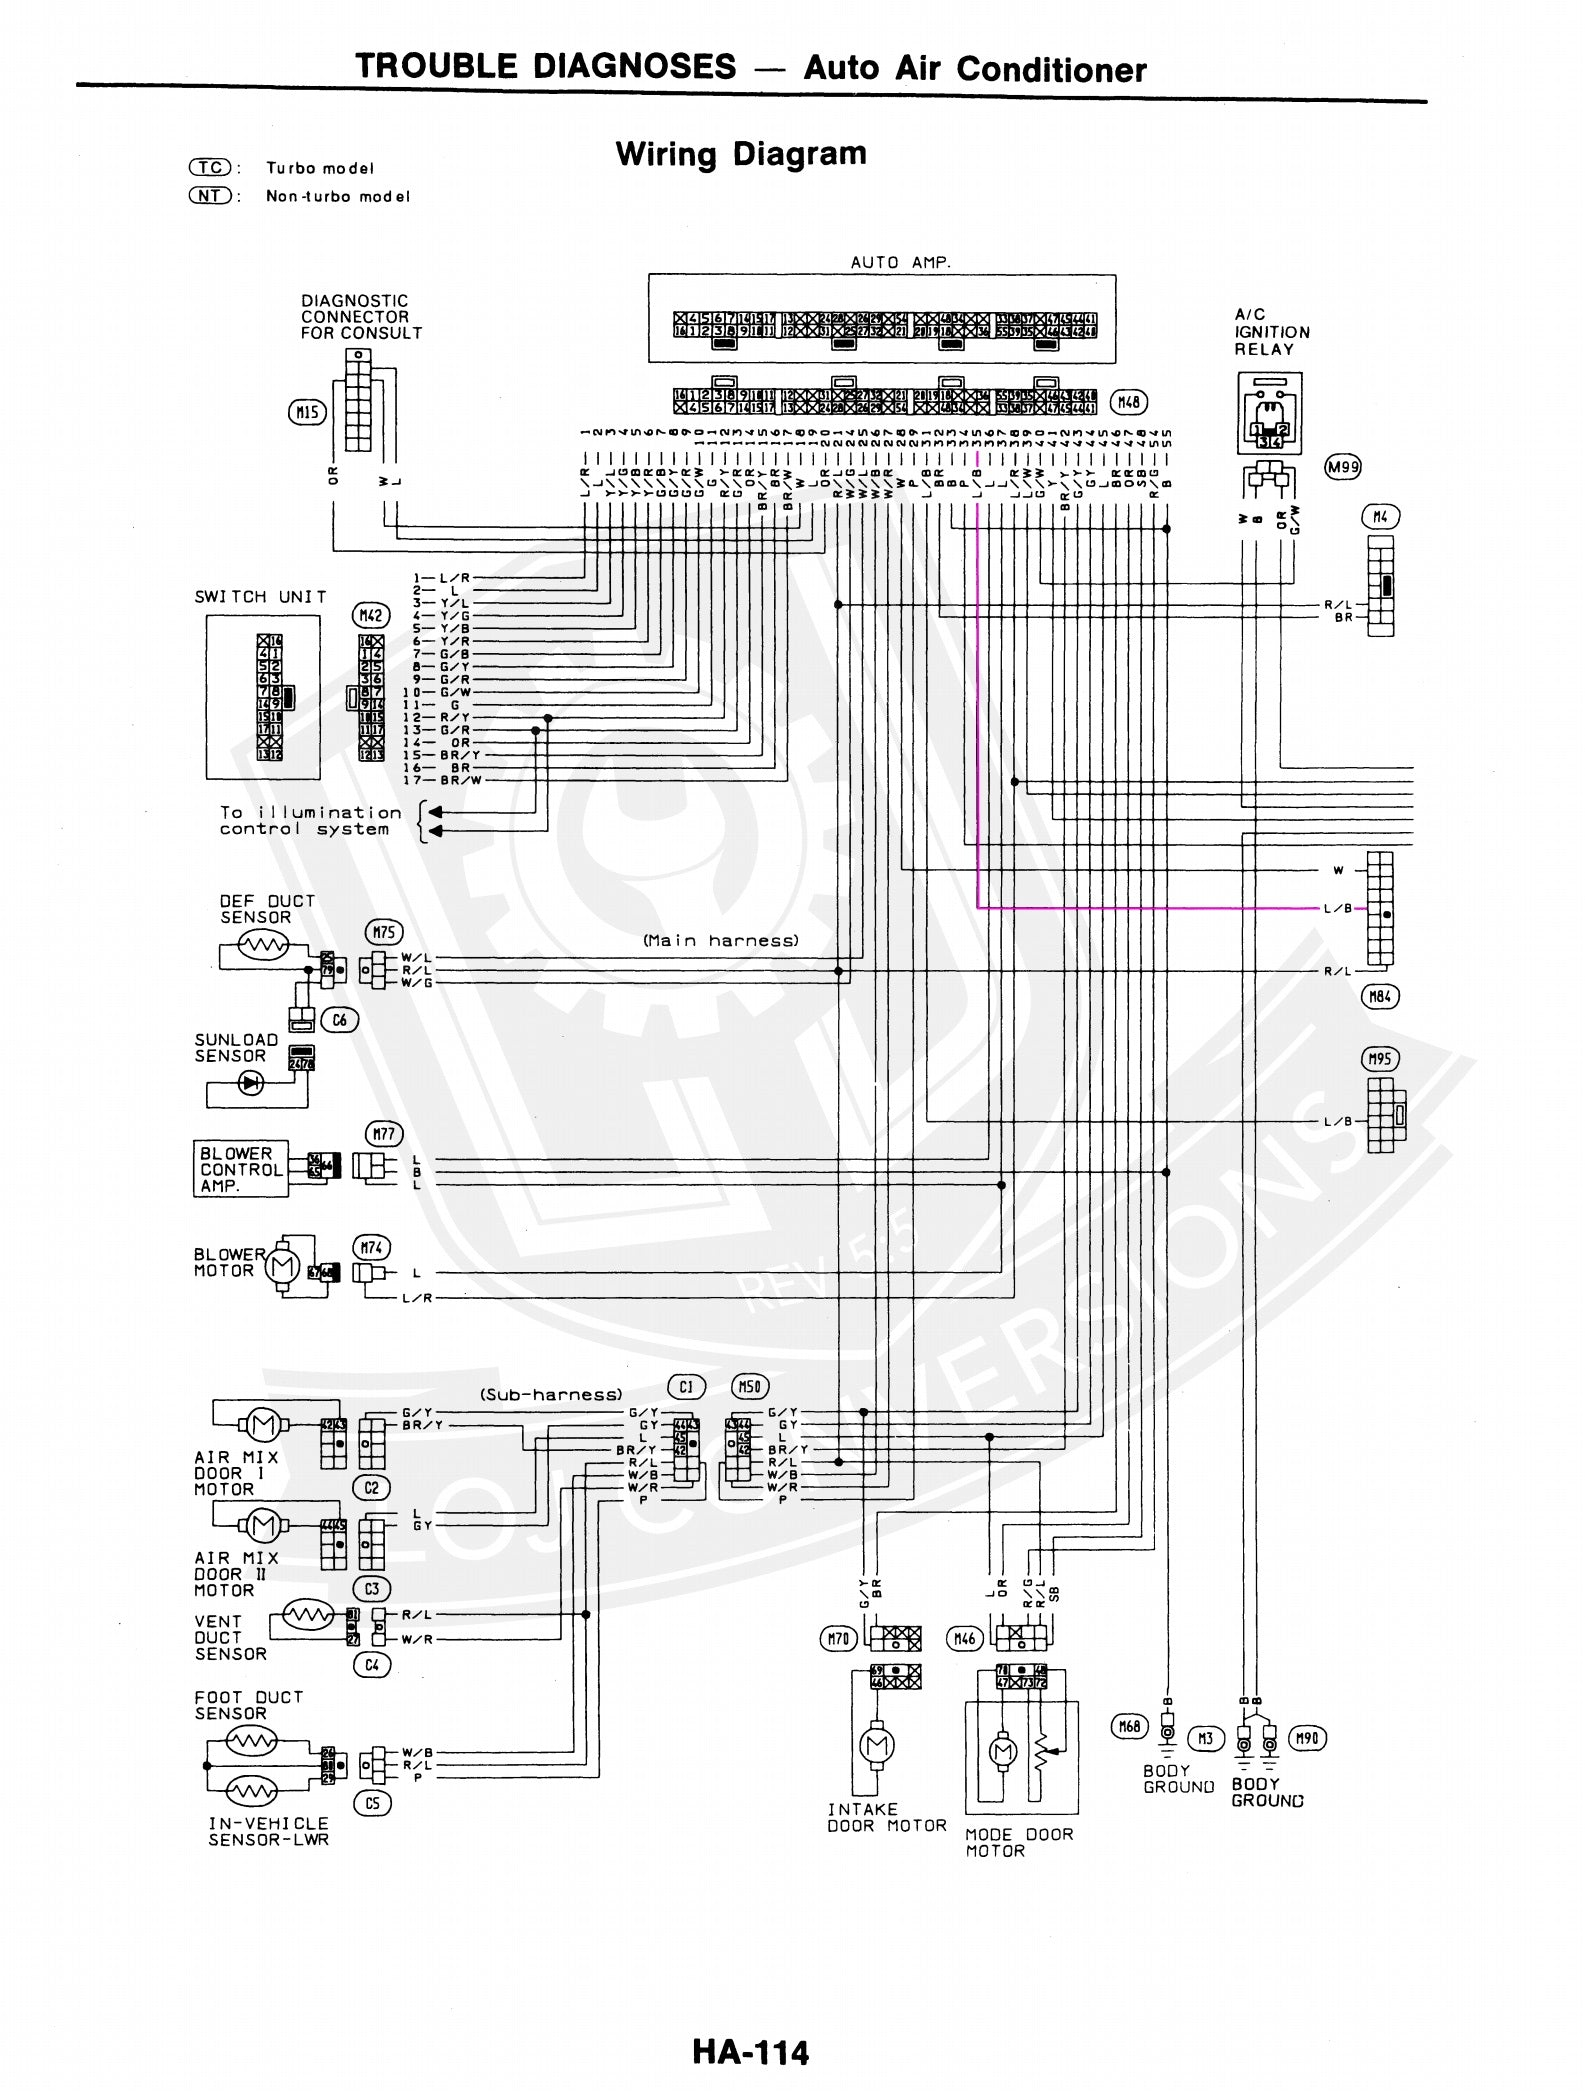 300ZX_AC_Wiring_Engine_Swap_03?13361147458220527412 wiring the ac in a 300zx engine conversion loj conversions Wiring Harness Diagram at creativeand.co